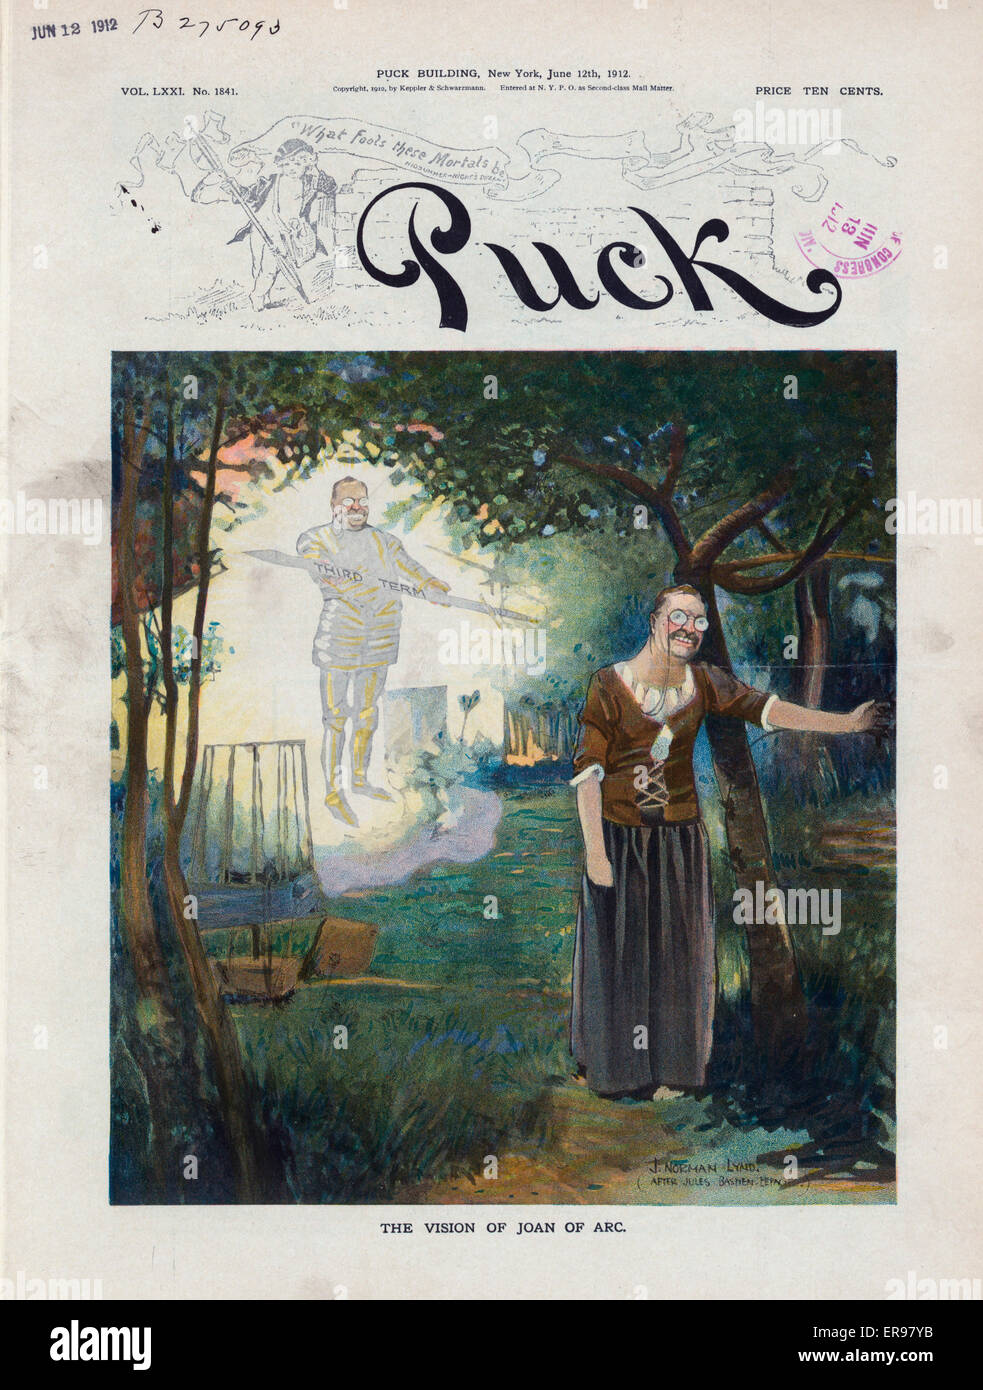 The vision of Joan of Arc. Illustration shows Theodore Roosevelt in a grove of trees, as a young Joan of Arc experiencing - Stock Image